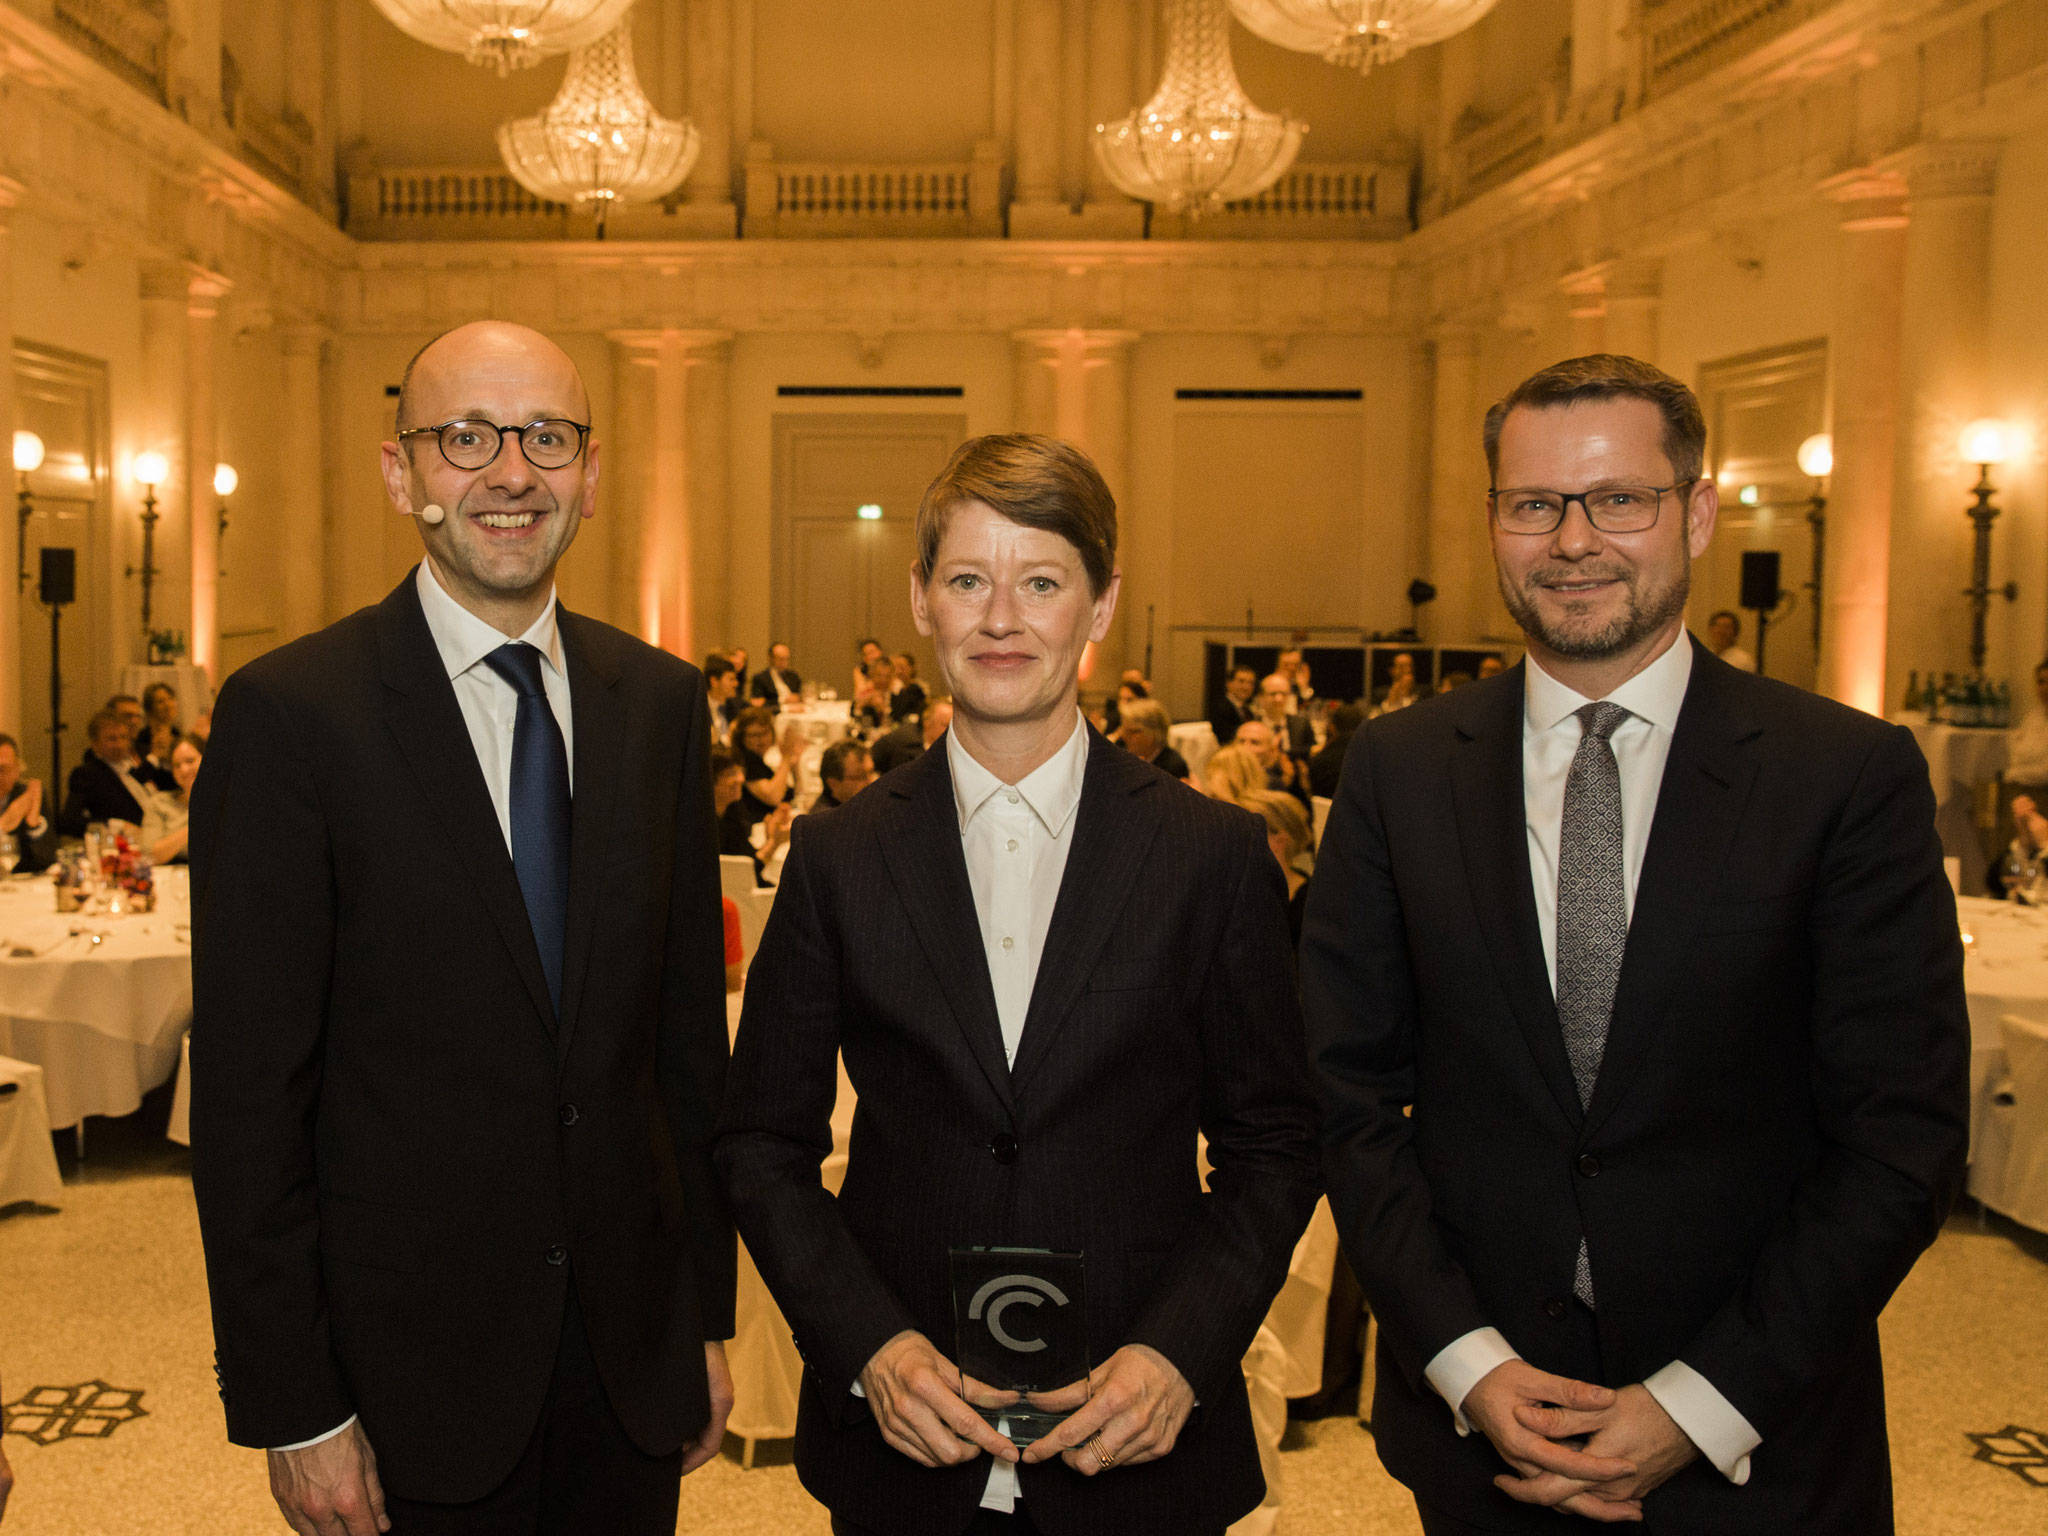 Lucas Flöther, Catherine Hoffmann, third prize Journalism Award, Dirk Andres © 2018 Sven Döring